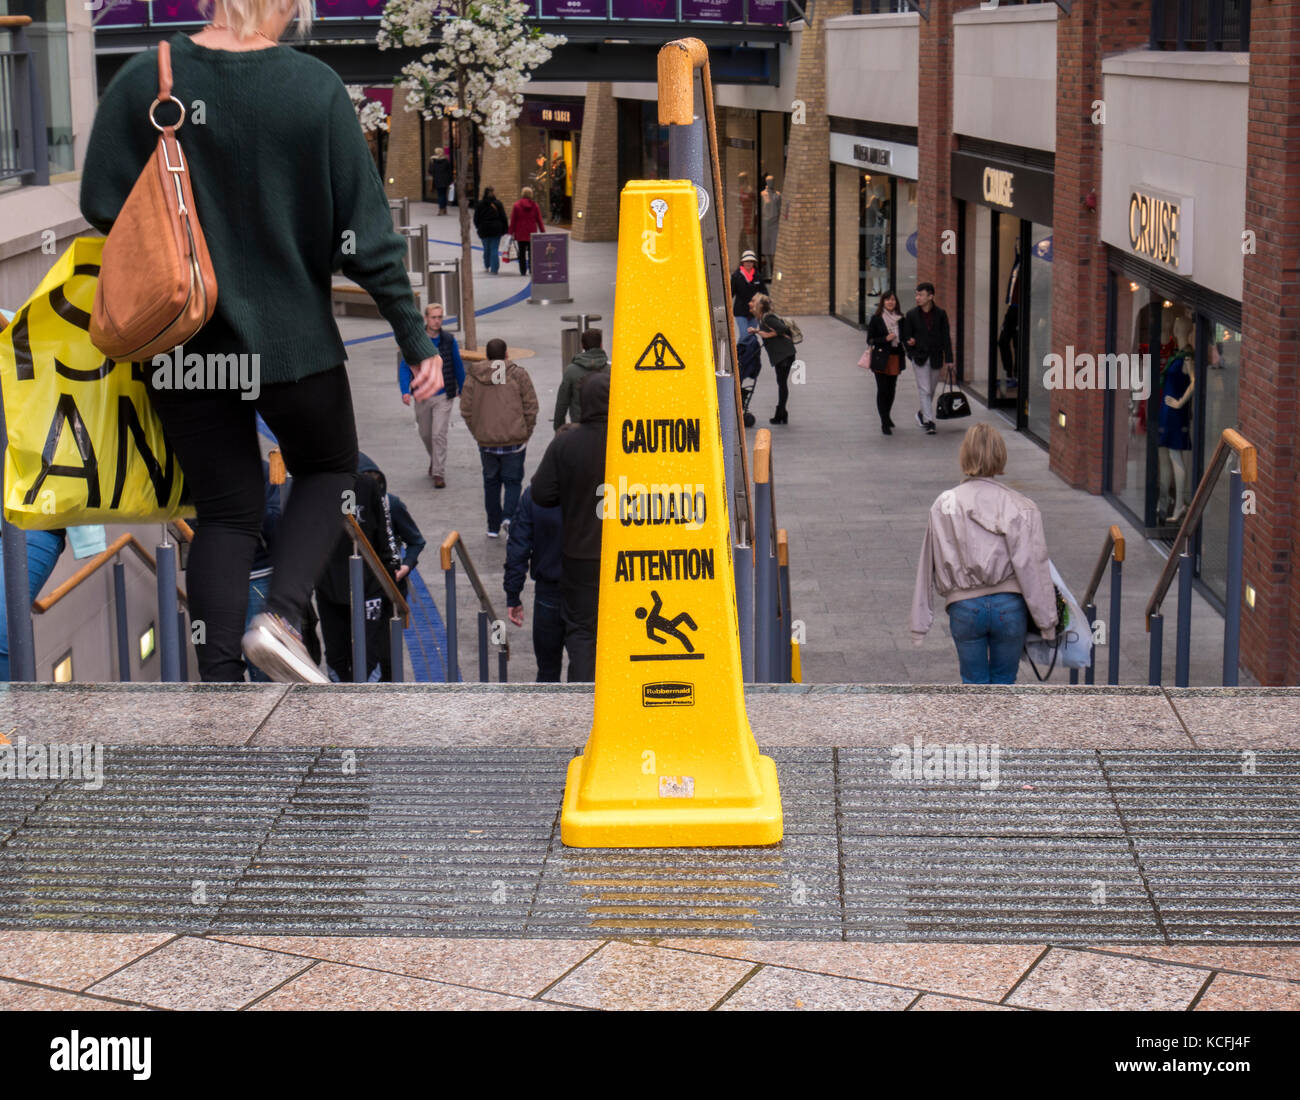 Warning of slippery steps at Victoria Square Shopping Centre, Belfast - Stock Image